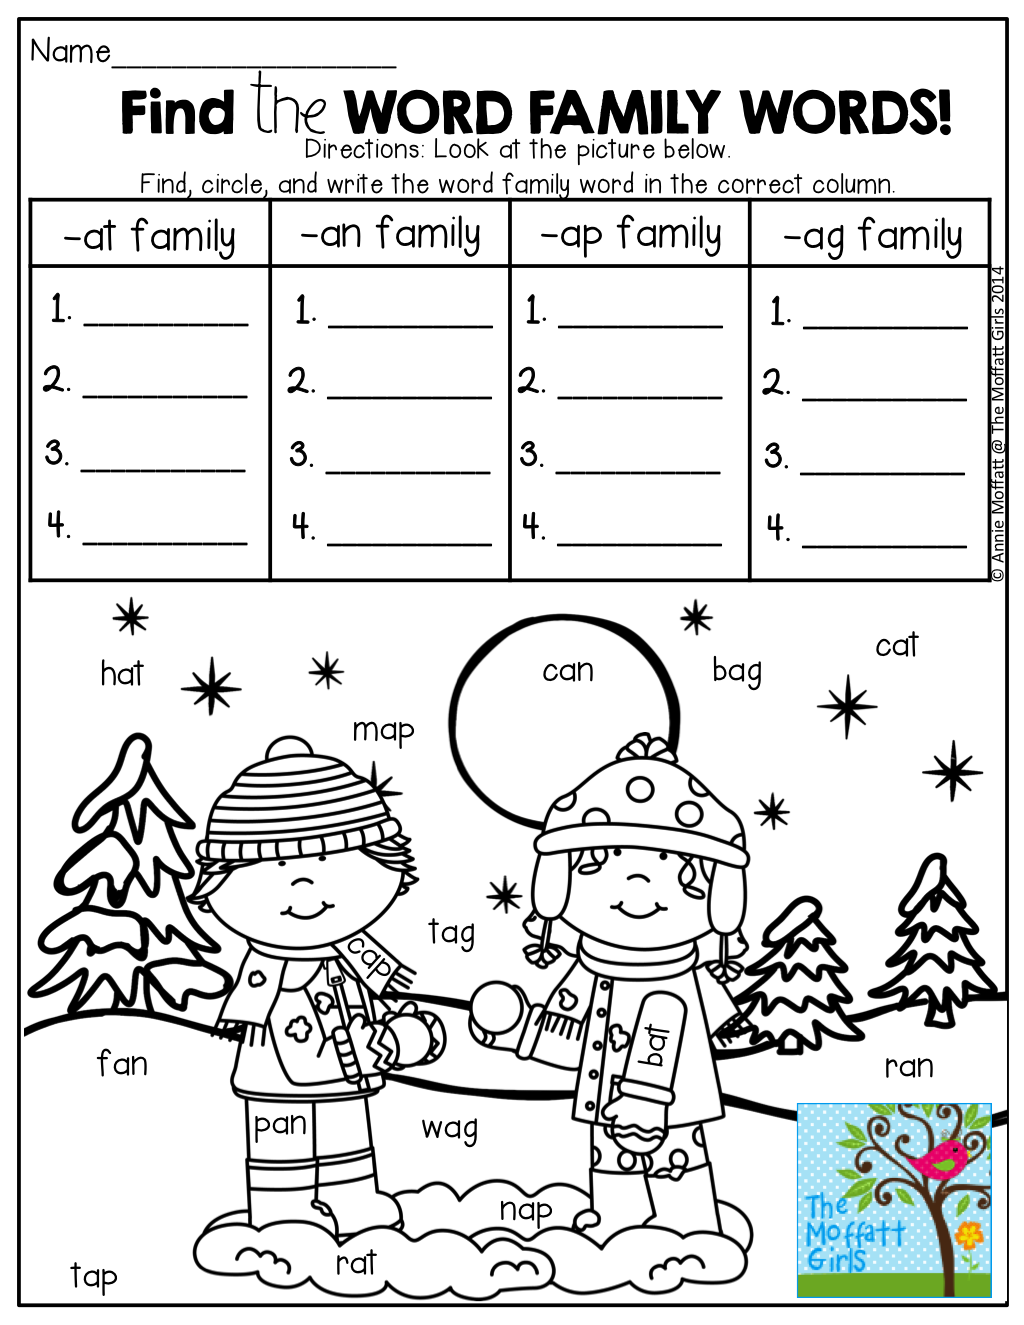 worksheet Ap Word Family Worksheets find the word family words in picture write them under correct column